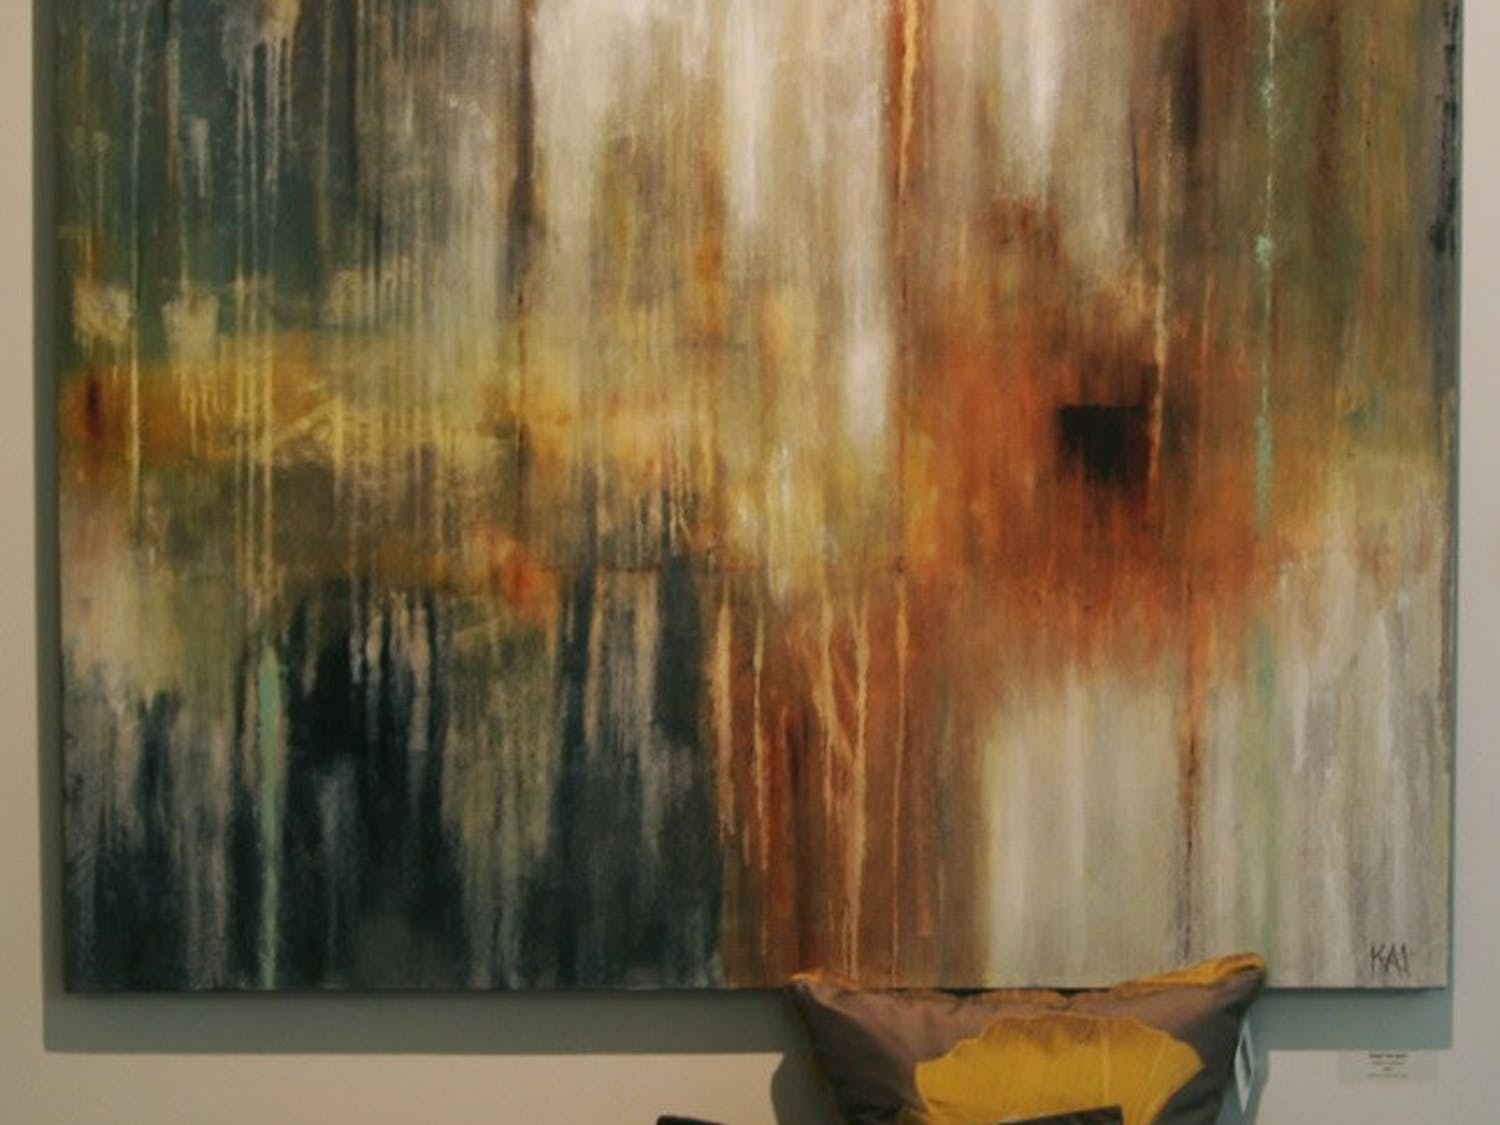 Kimowan Metchewais's work is featured in the LIGHT art and design gallery.